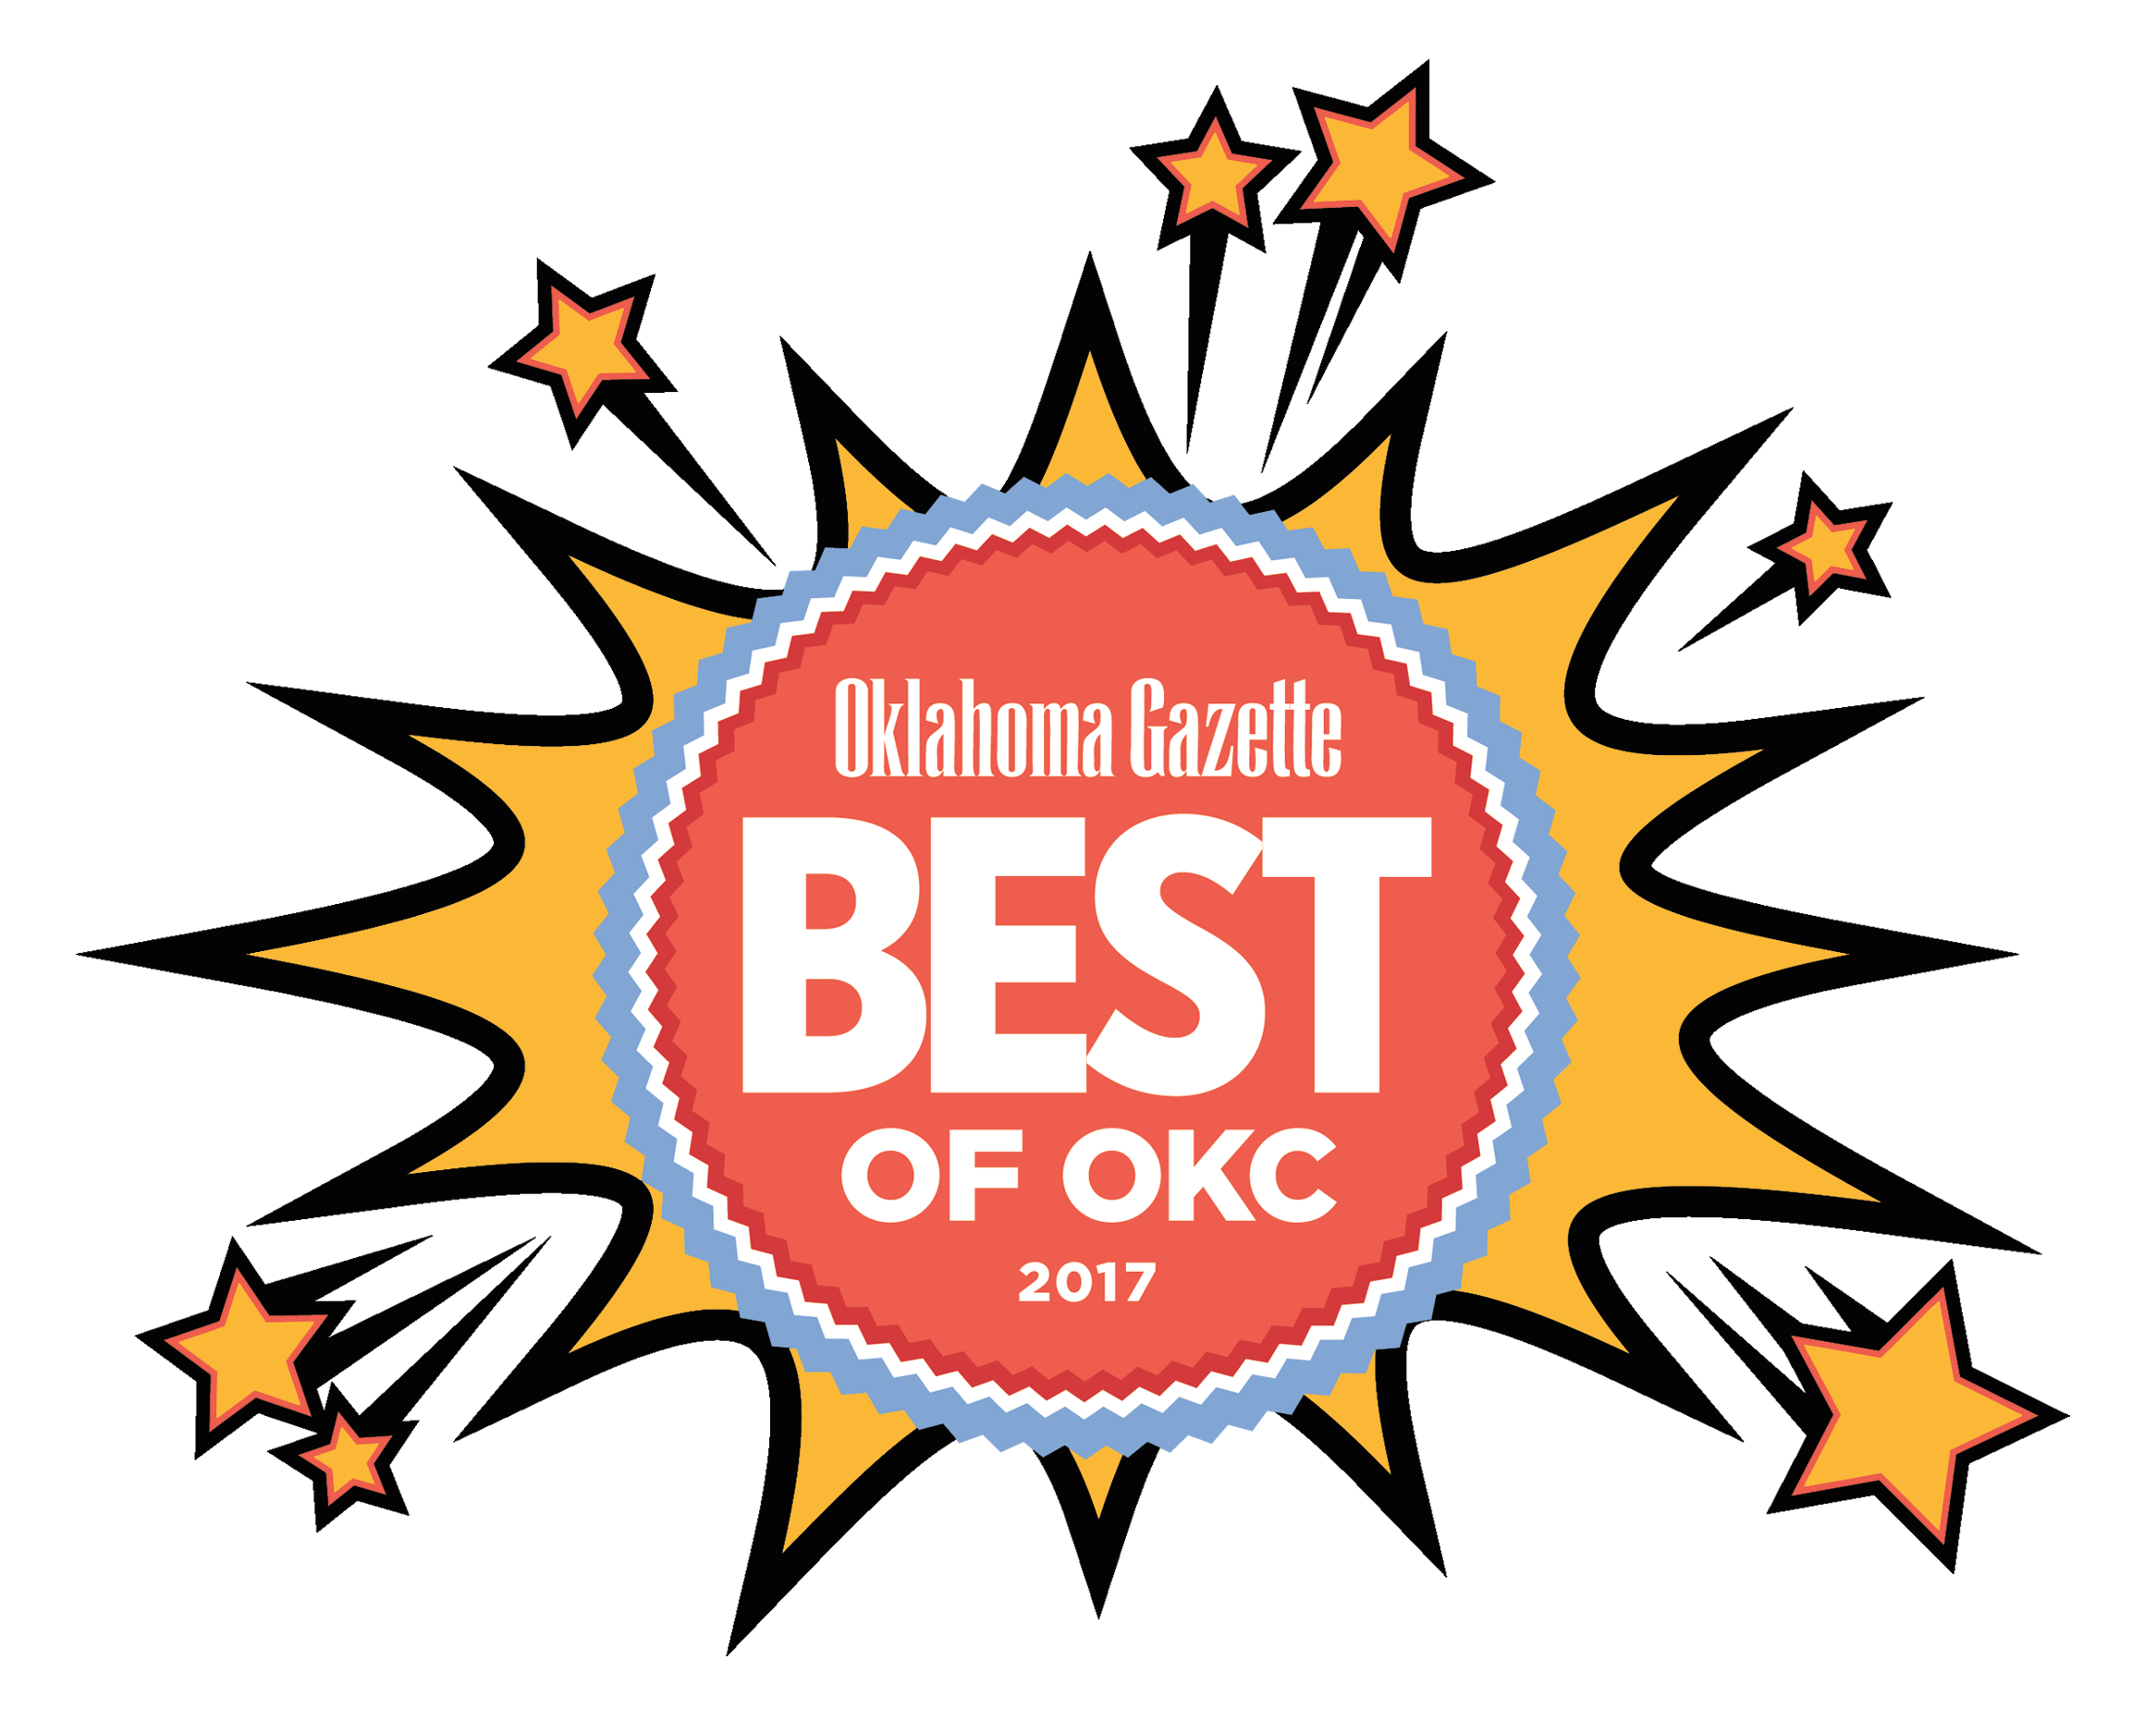 Best-Of-OKC-2017-openerlogo